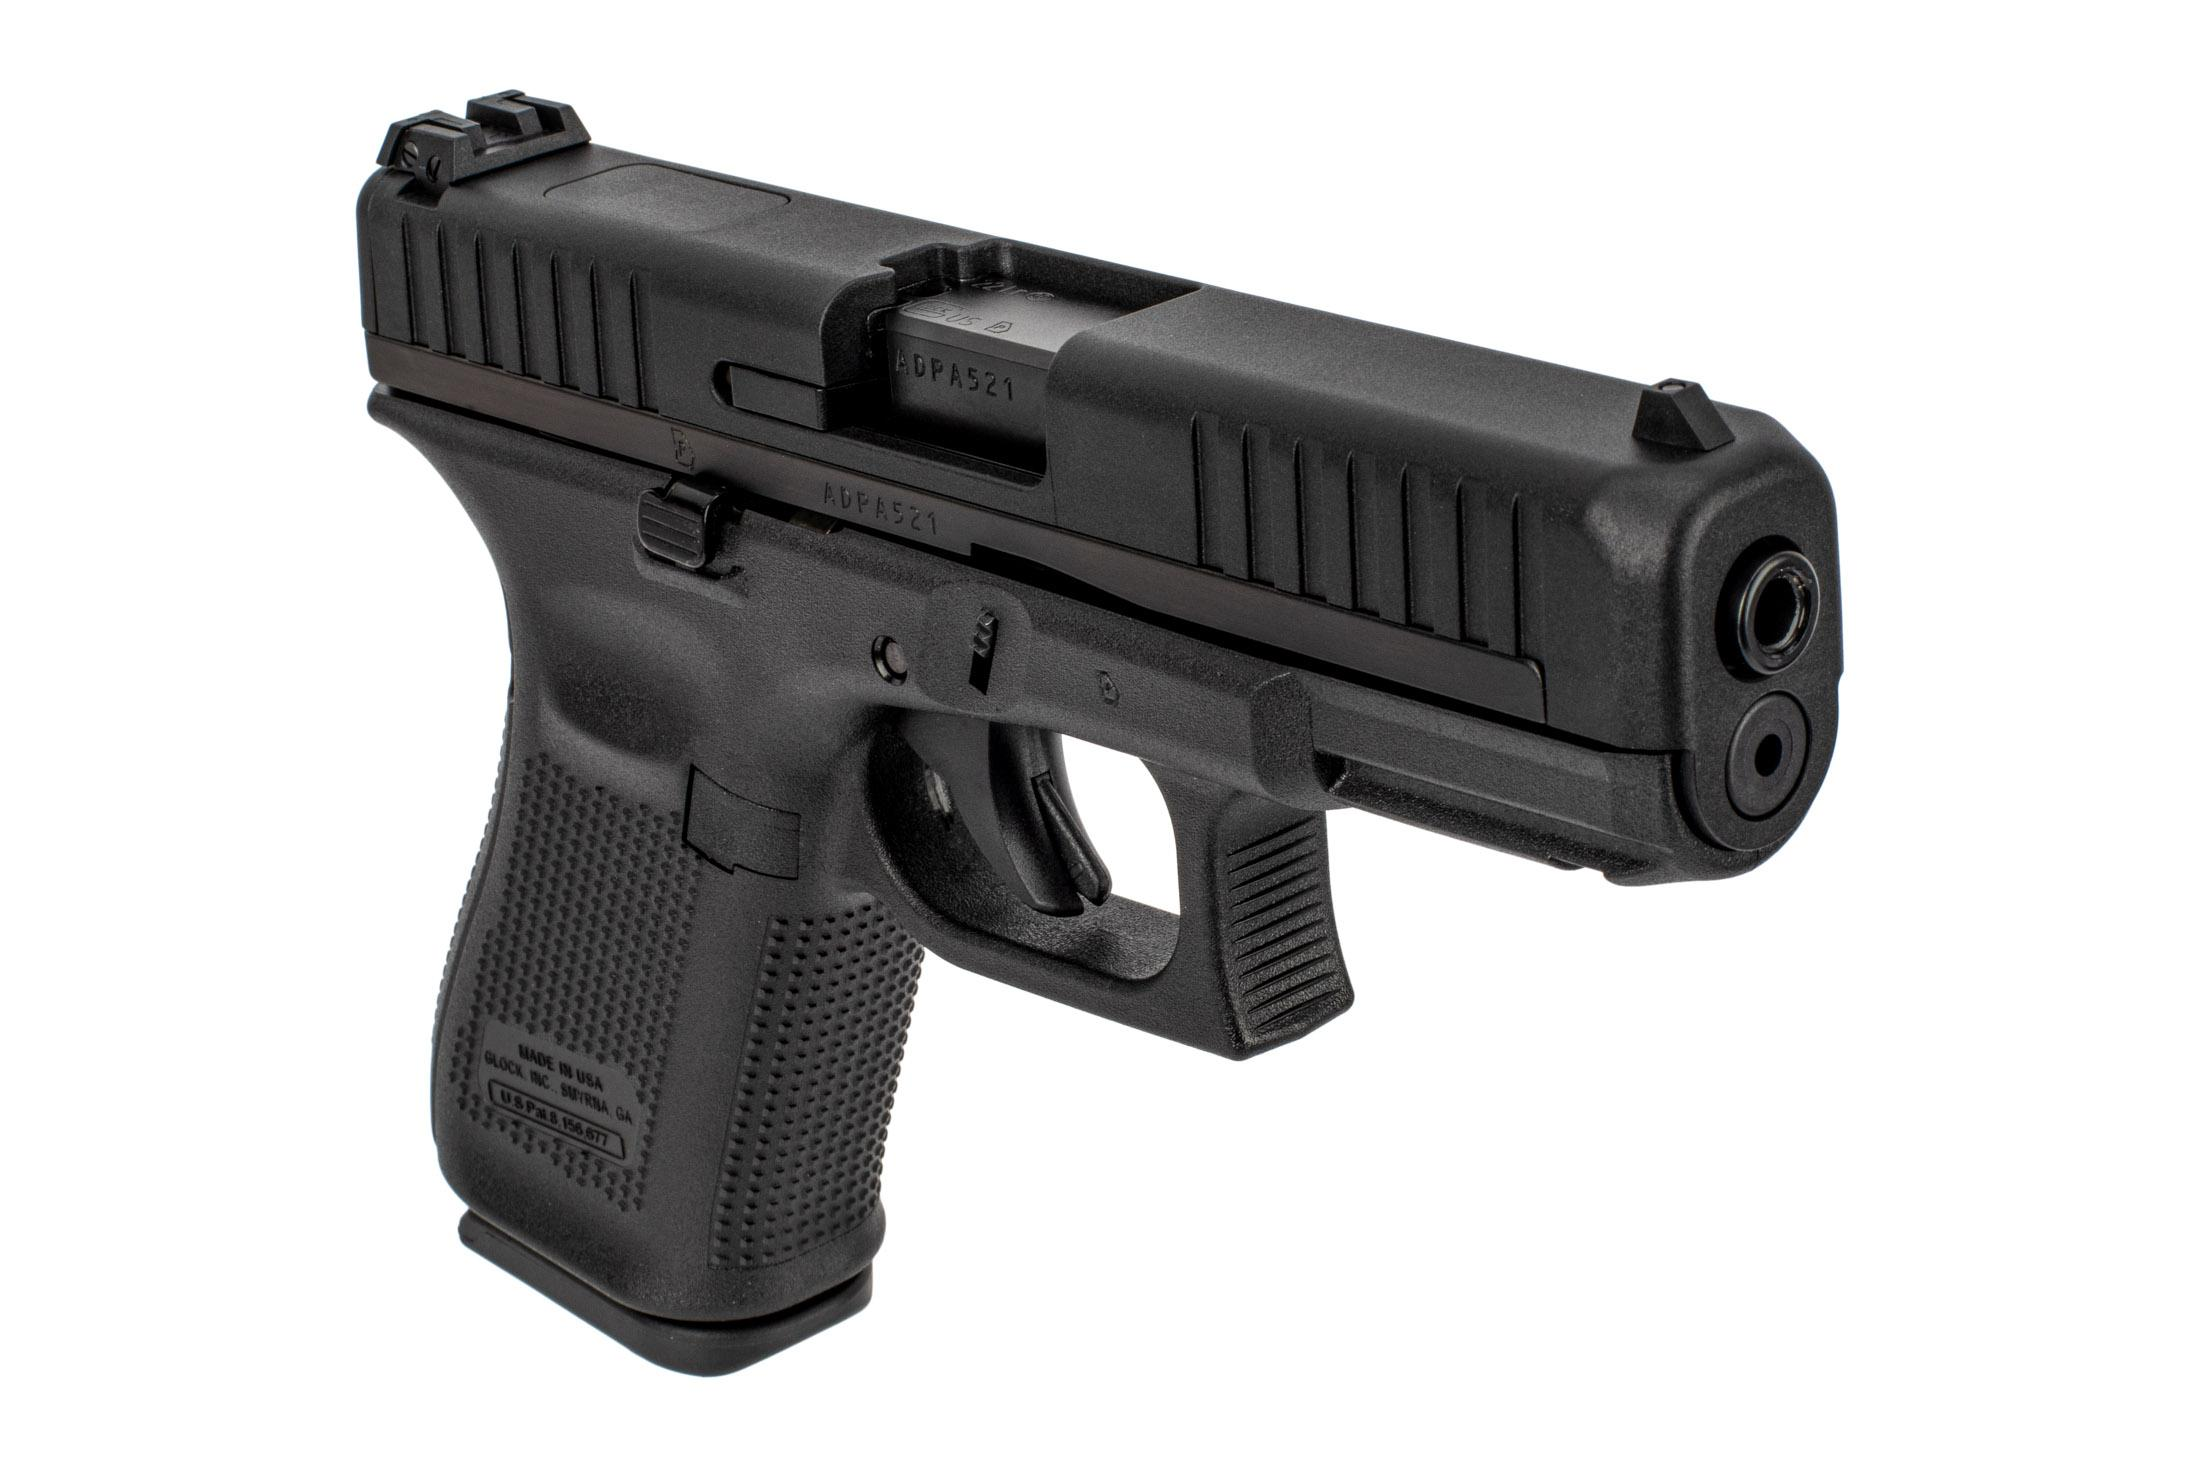 Glock G44 22lr pistol features adjustable rear sights and the Glock Marksman barrel